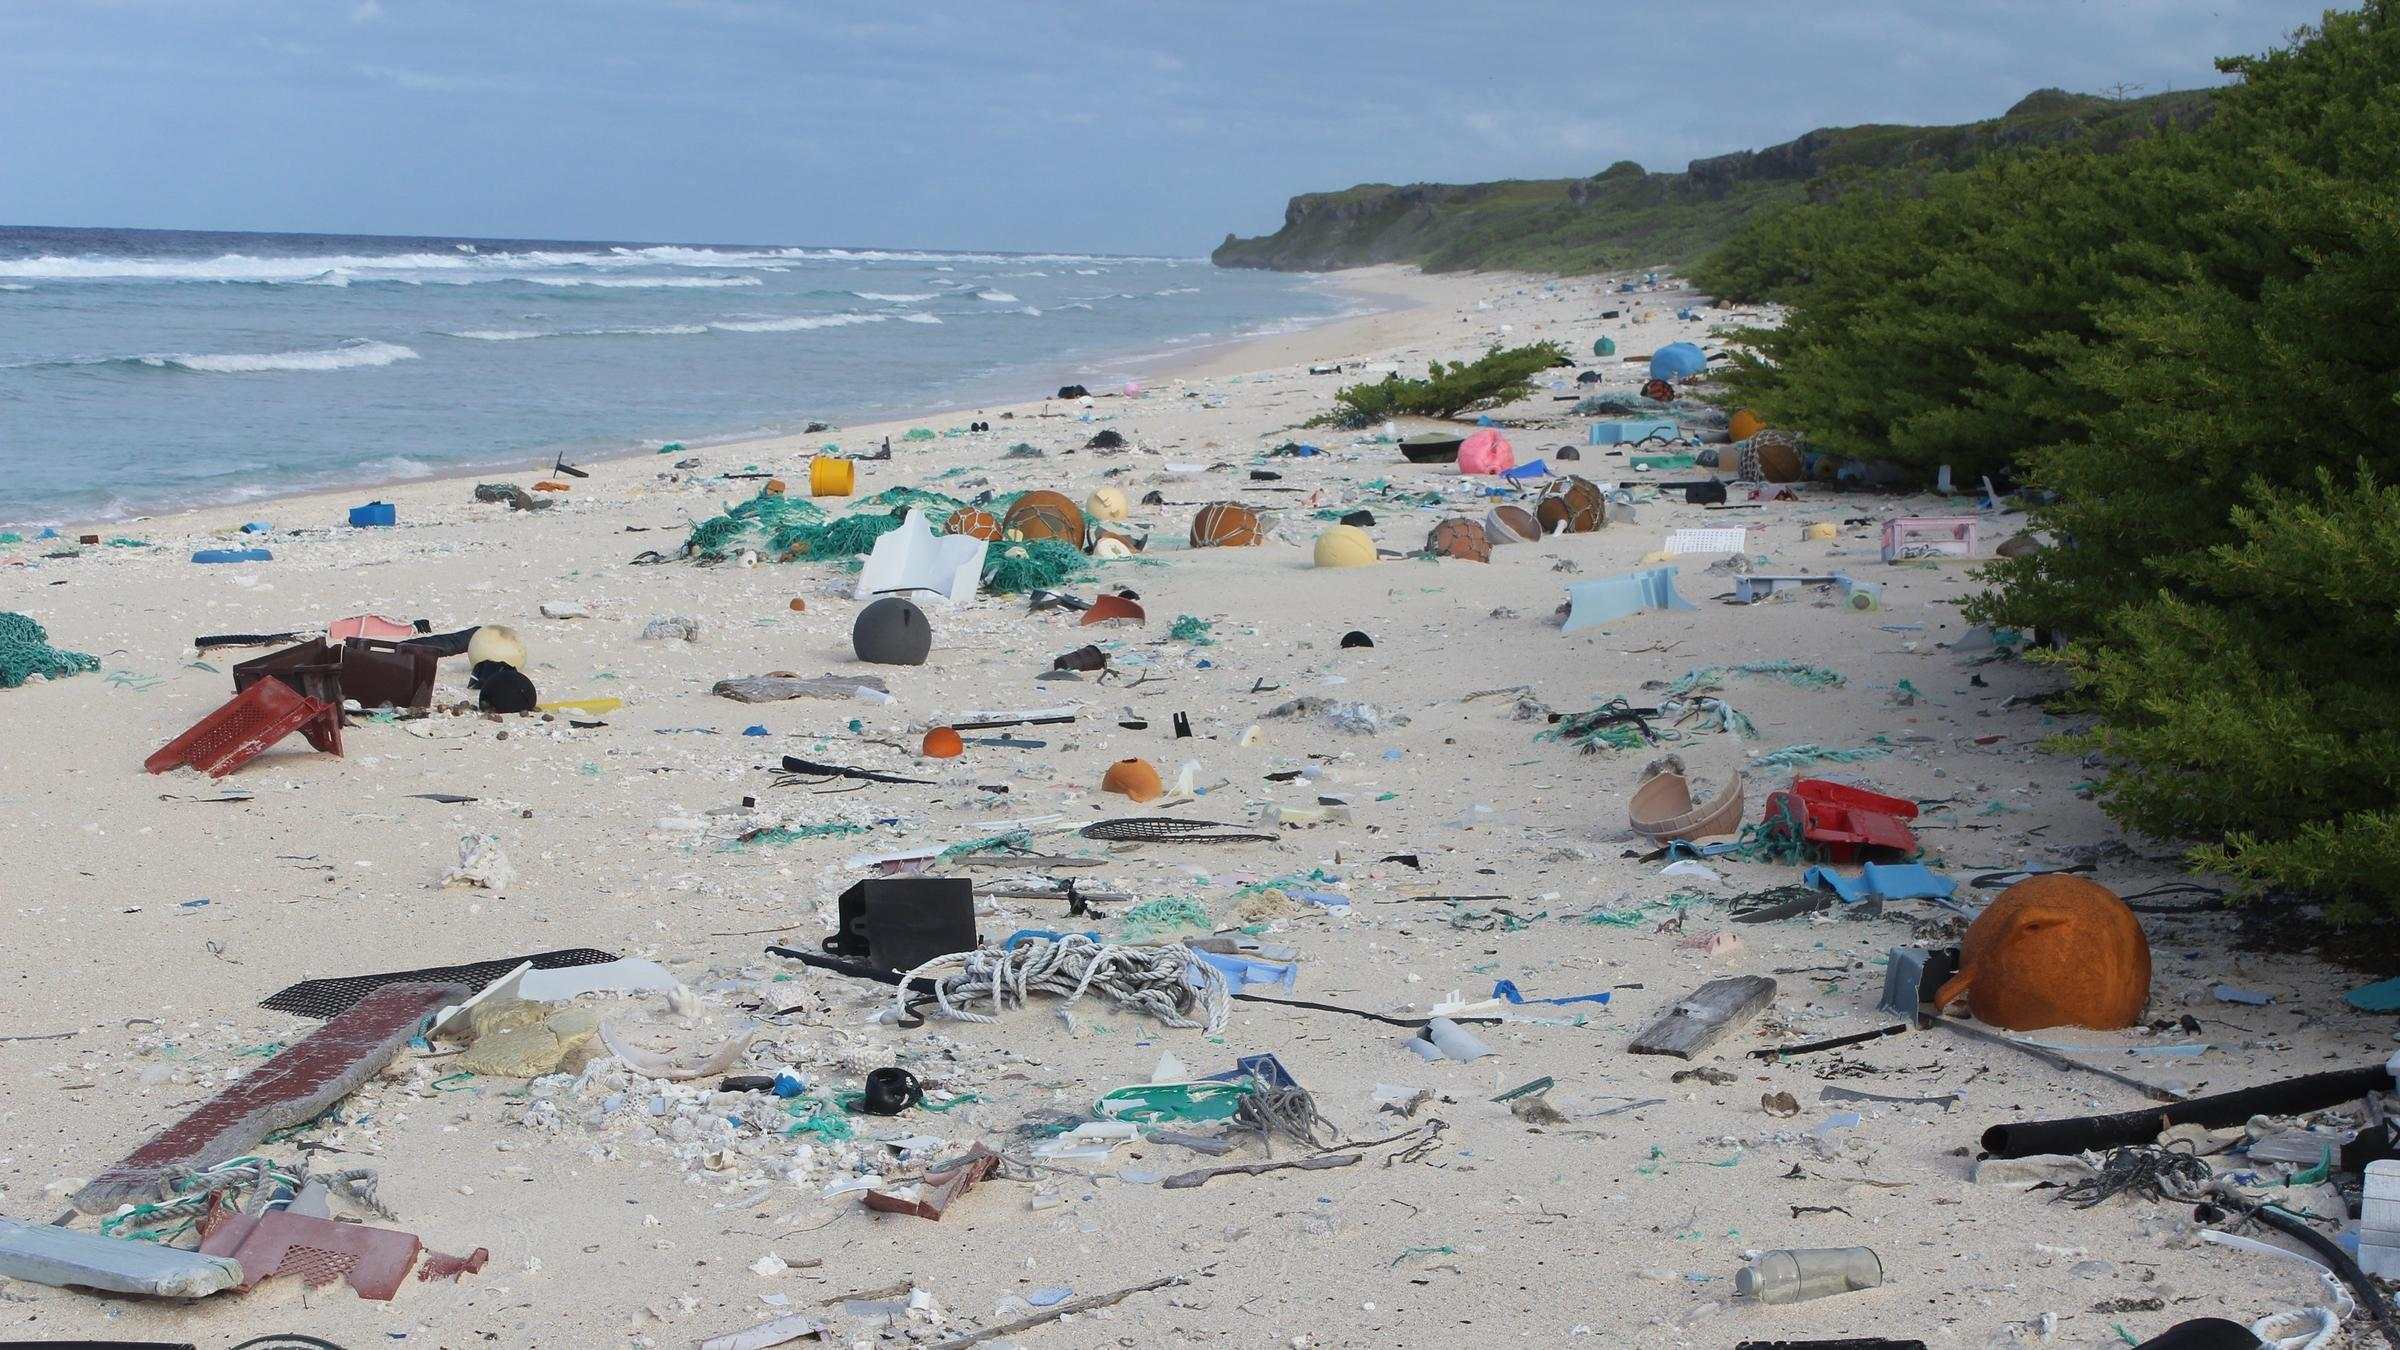 37 million pieces of plastic found on uninhabited Henderson Island in Pacific